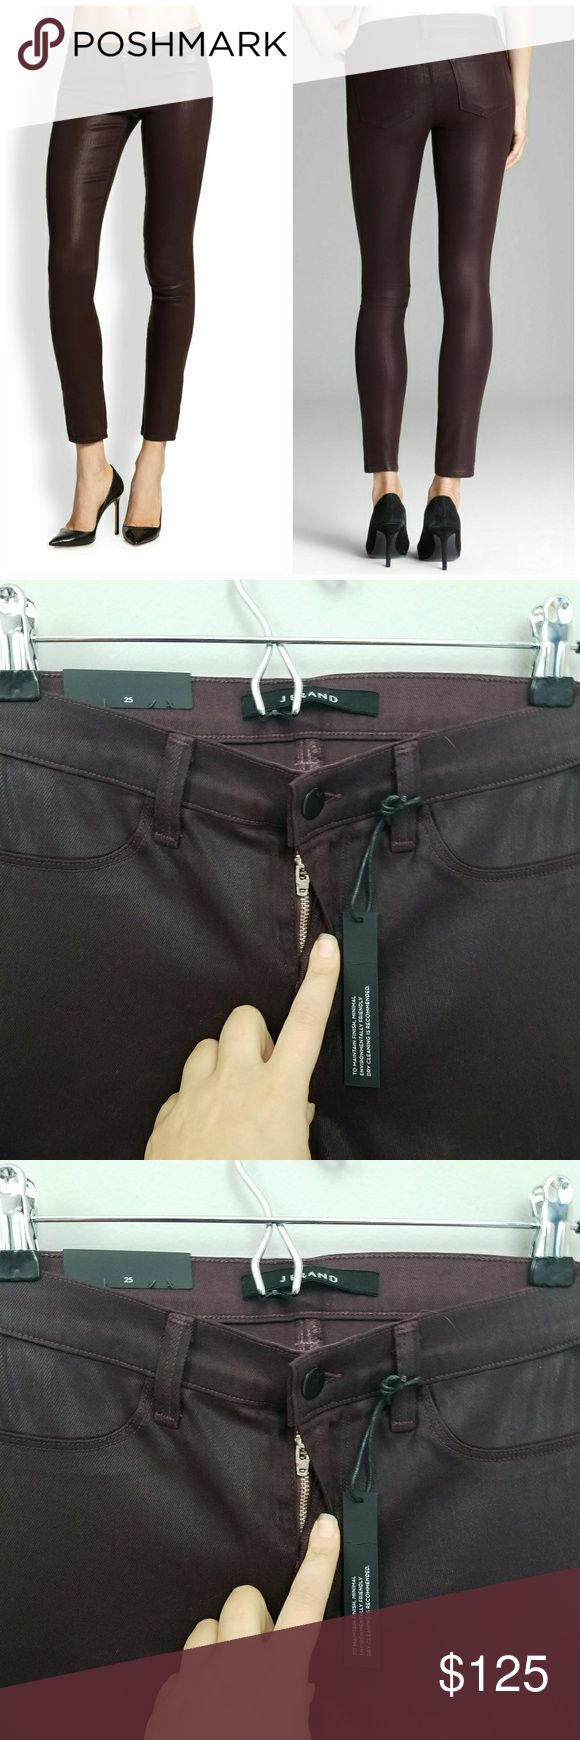 NWT J Brand | Coated super skinny jeans New j brand jeans.  Size 25. Perfect for a night out.  Some stretch.  Great shine gives leather look without the leather discomfort.  Color is lacq pinot, a purple color. J Brand Jeans Skinny